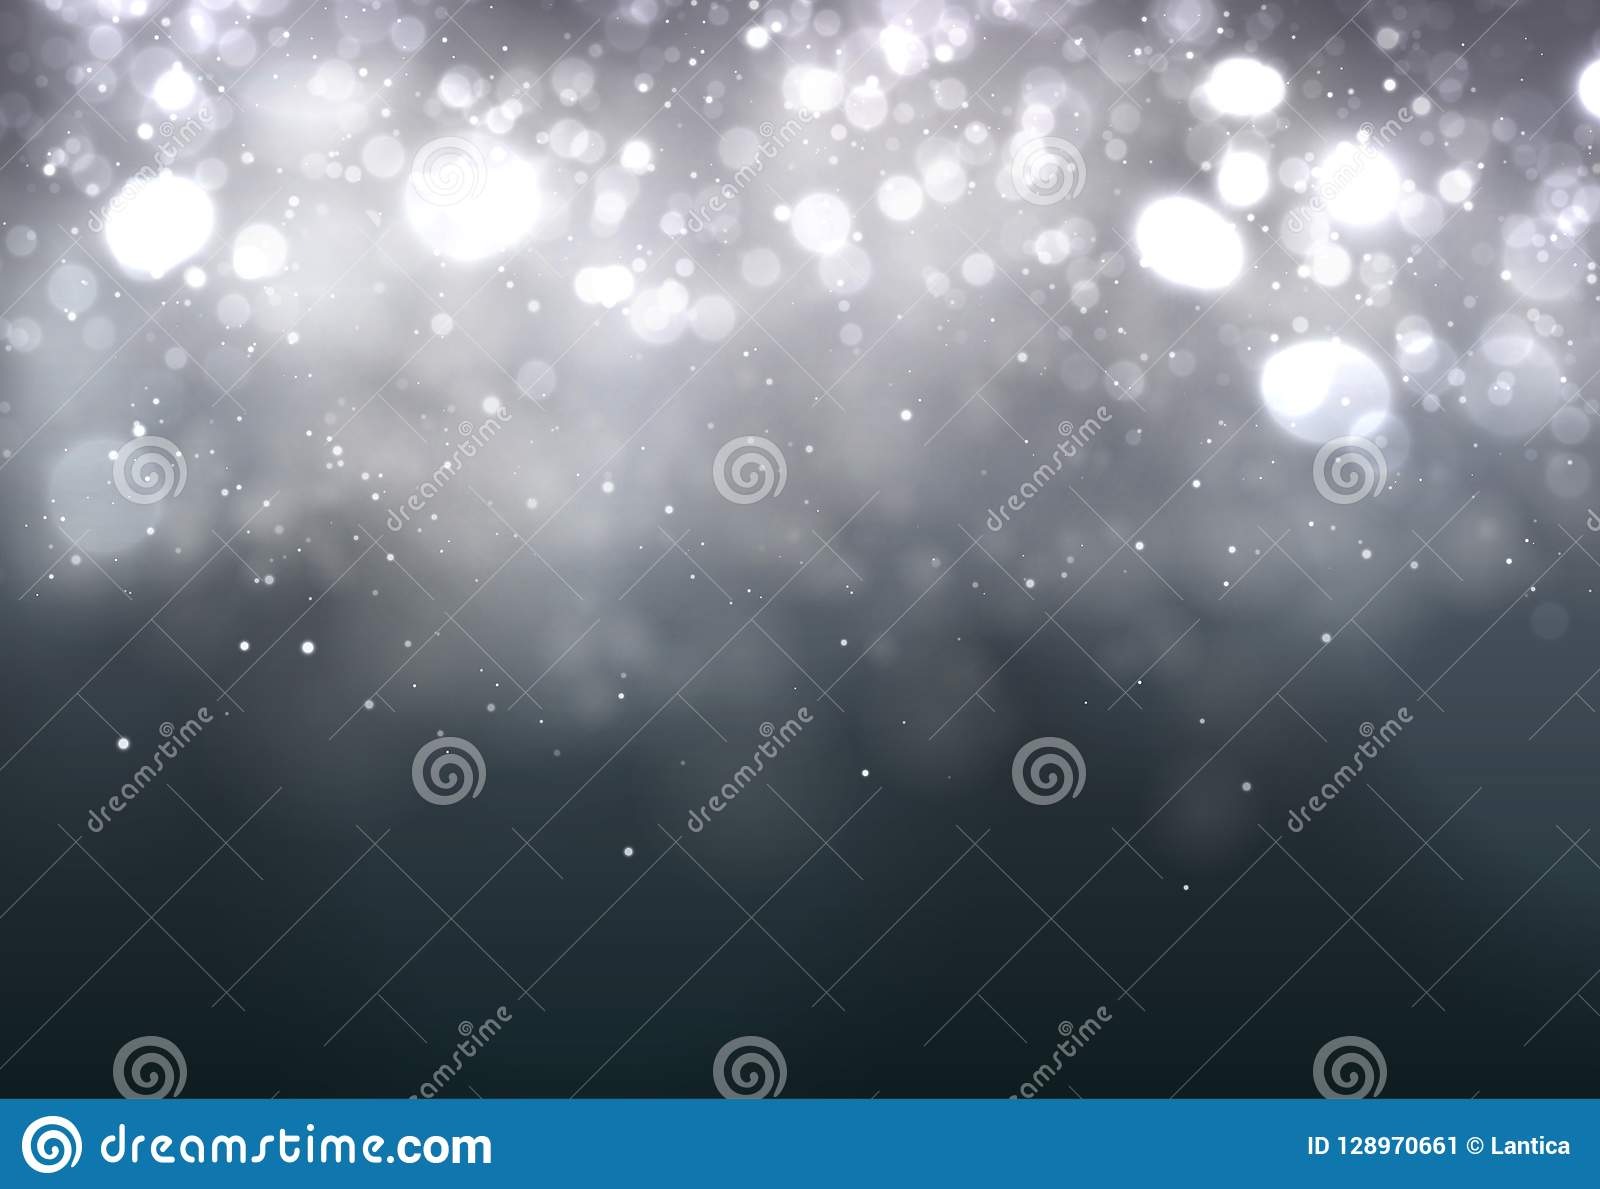 Soft bokeh dark abstract background. Festive Lights.